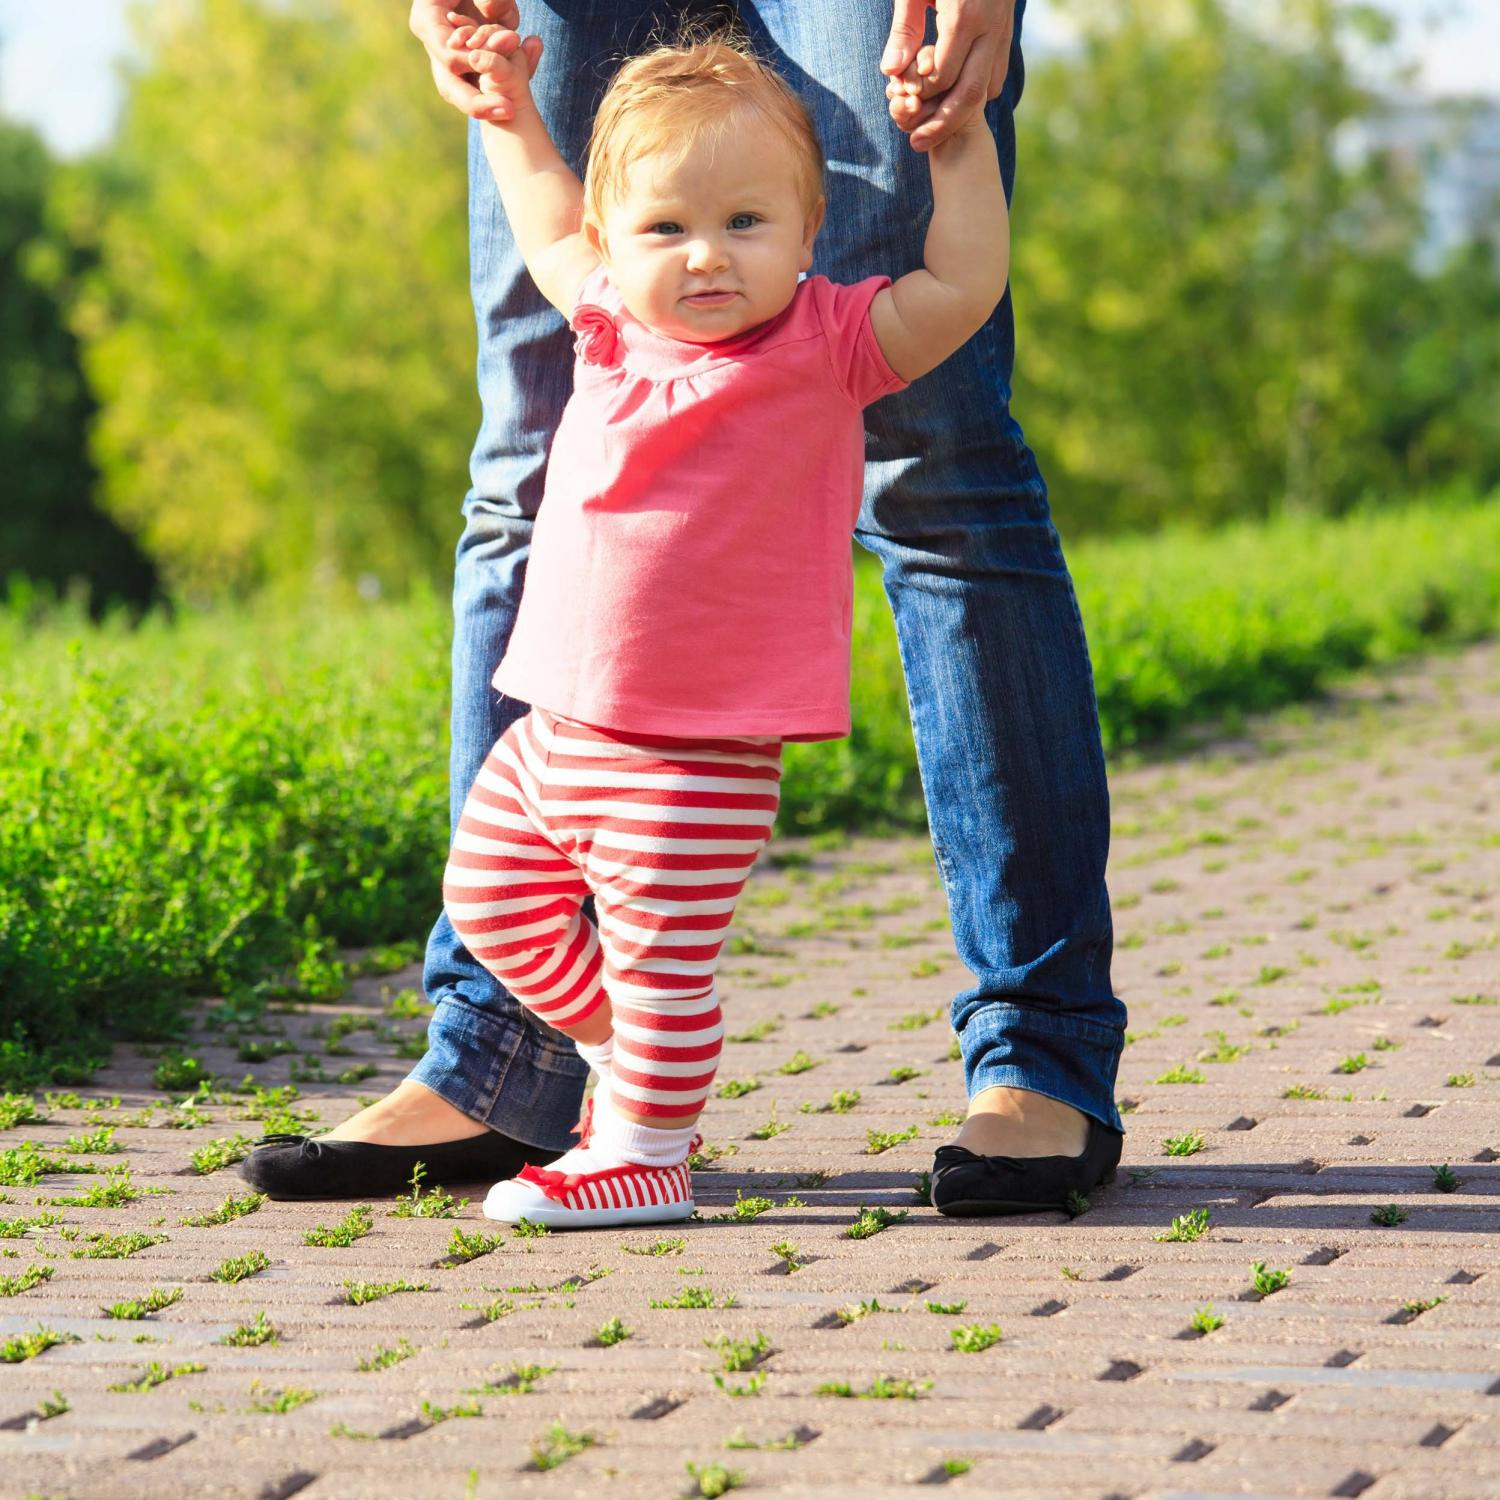 Should toddler wear shoes learning walk